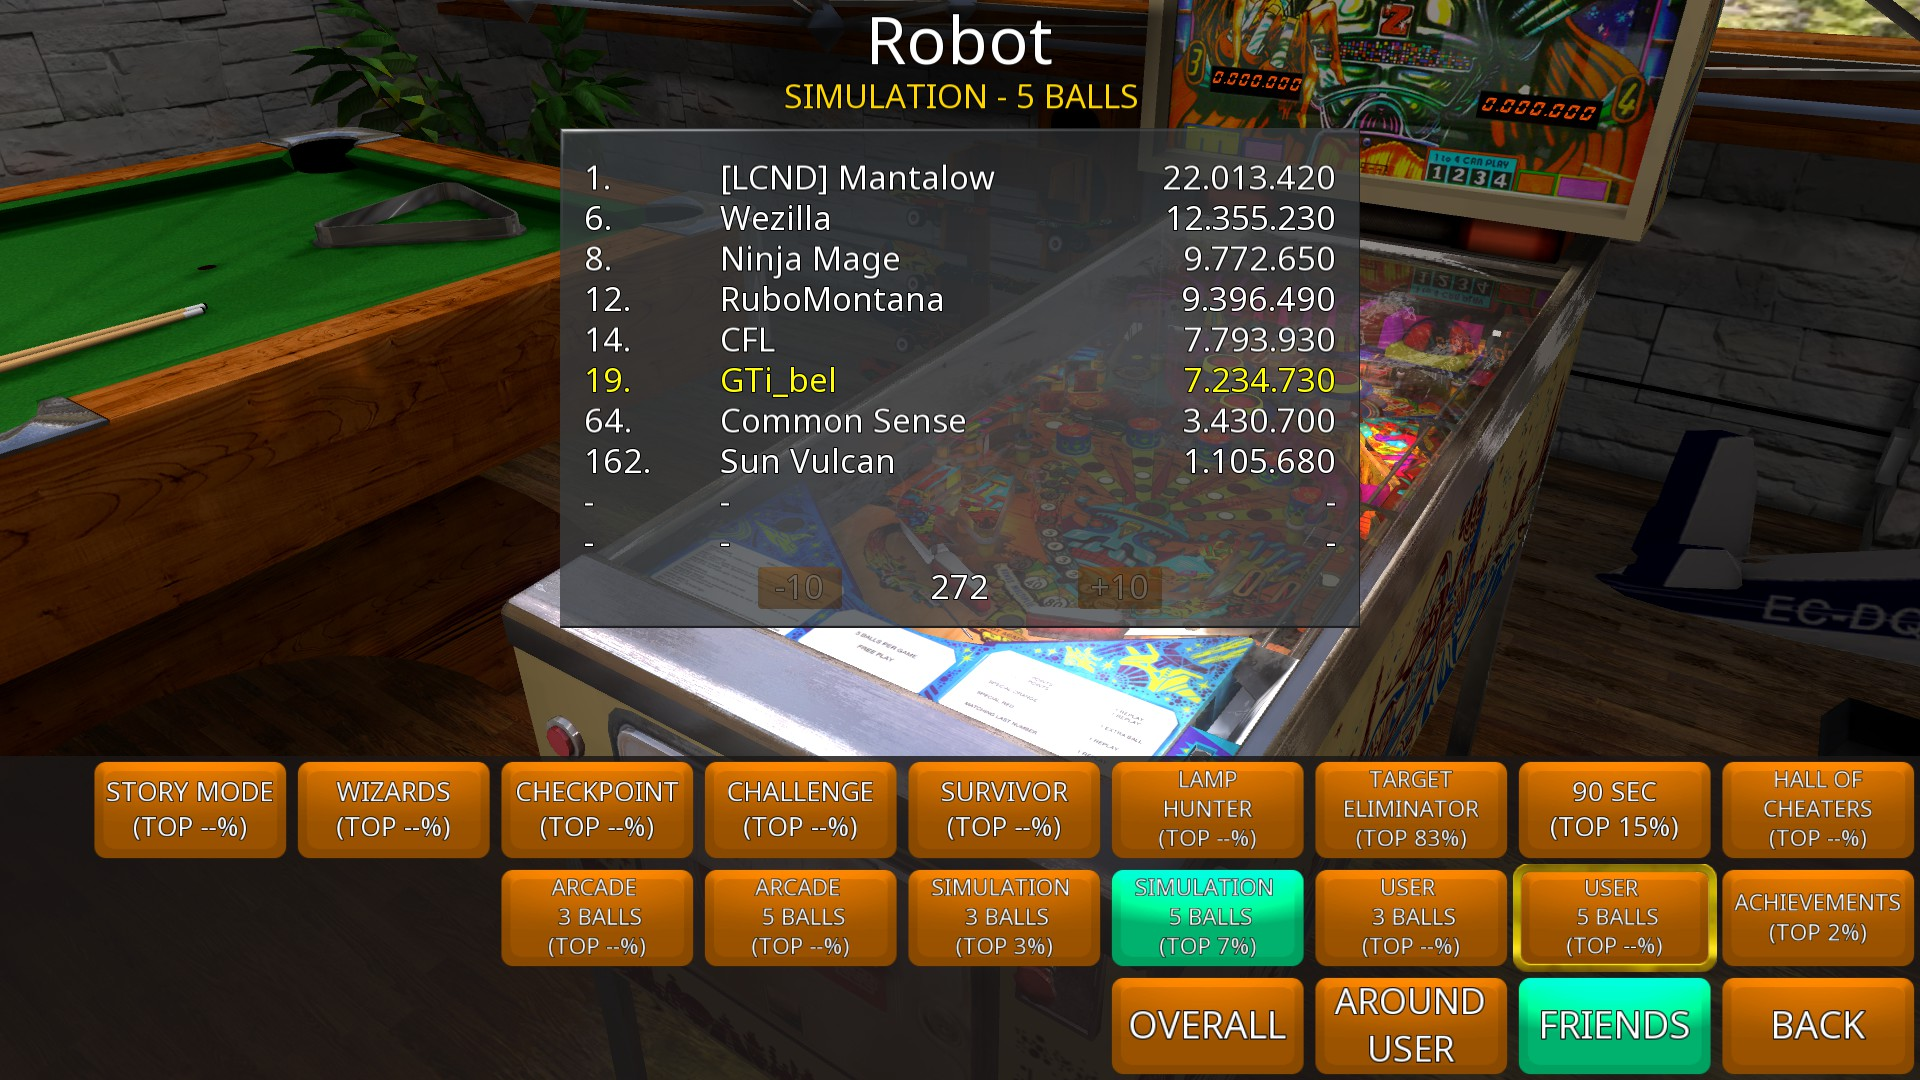 GTibel: Zaccaria Pinball: Robot [5 balls] (PC) 7,234,730 points on 2018-08-16 08:24:08